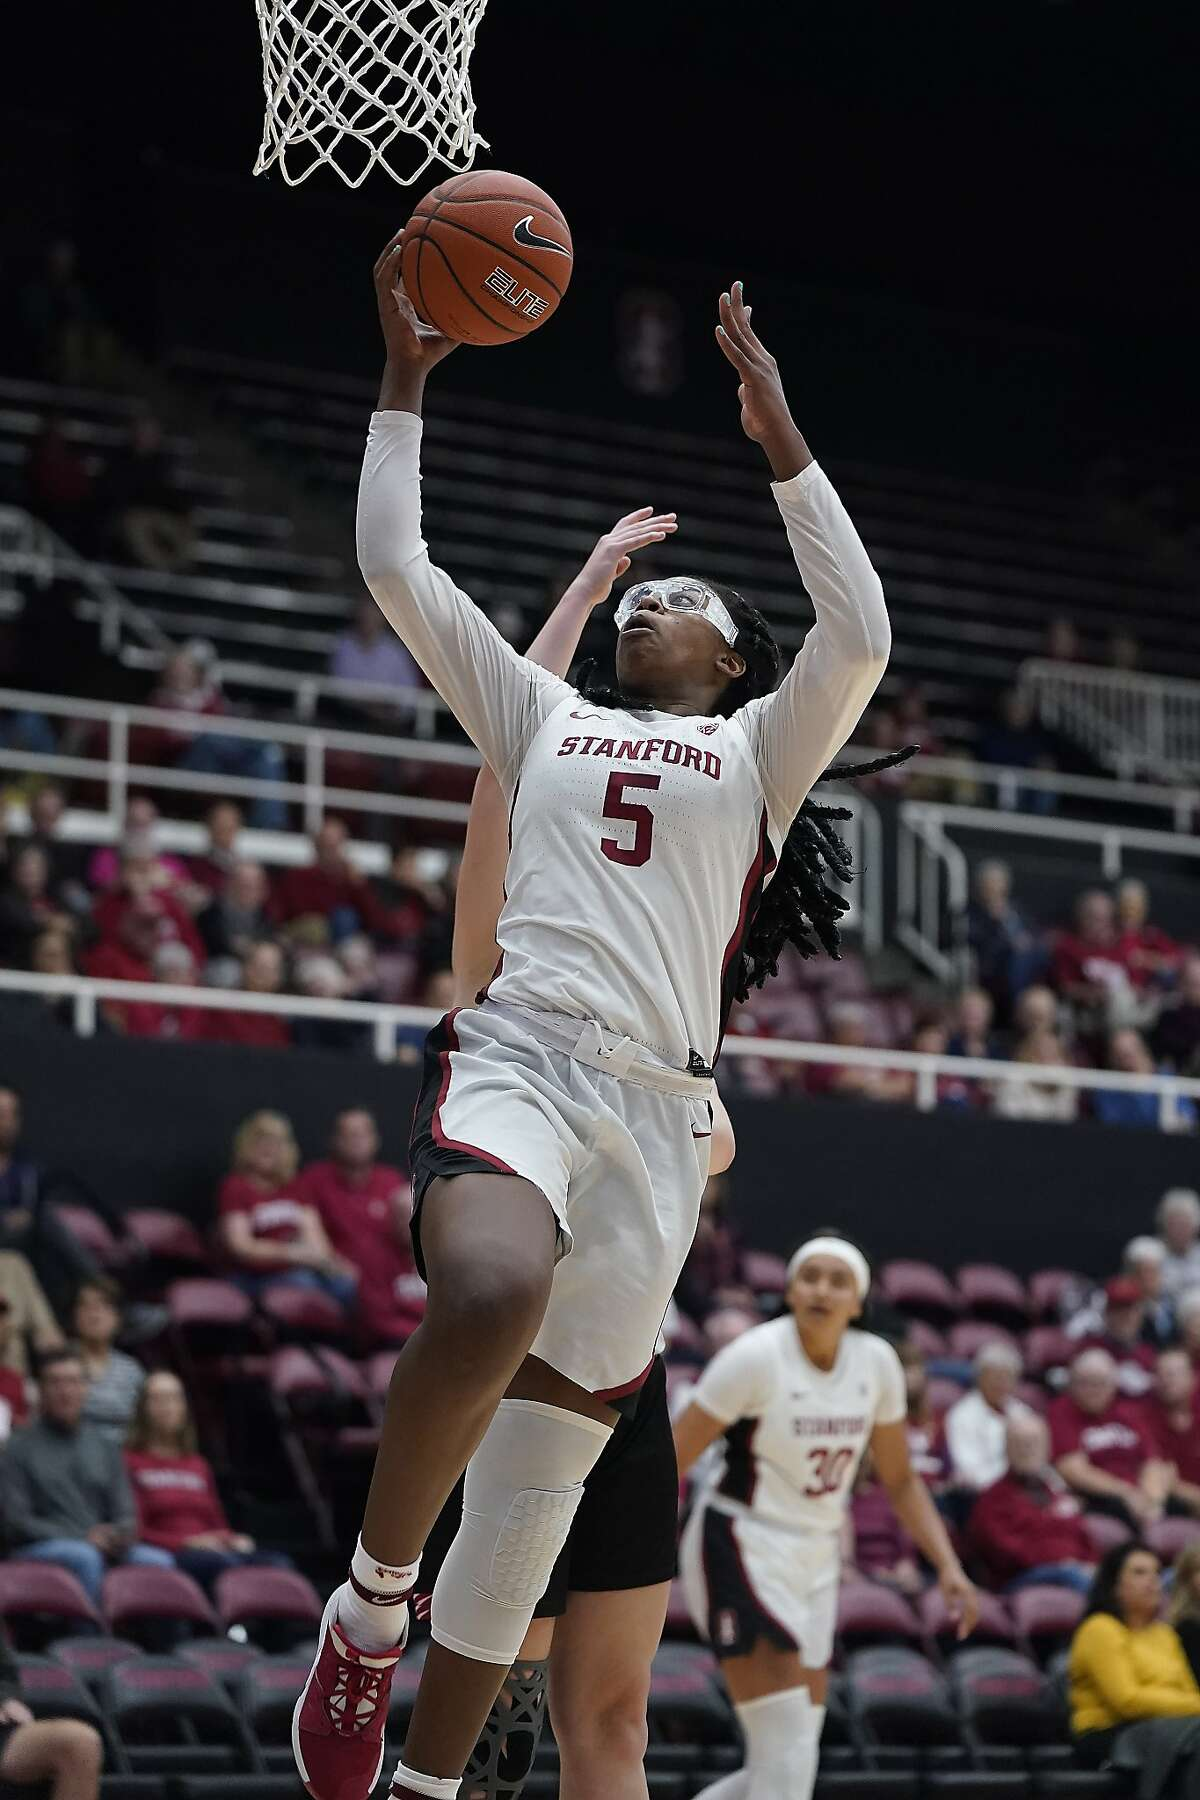 Stanford forward Francesca Belibi (5) lays the ball up against Eastern Washington during the first half of an NCAA college basketball game Tuesday, Nov. 5, 2019, in Stanford, Calif. (AP Photo/Tony Avelar)